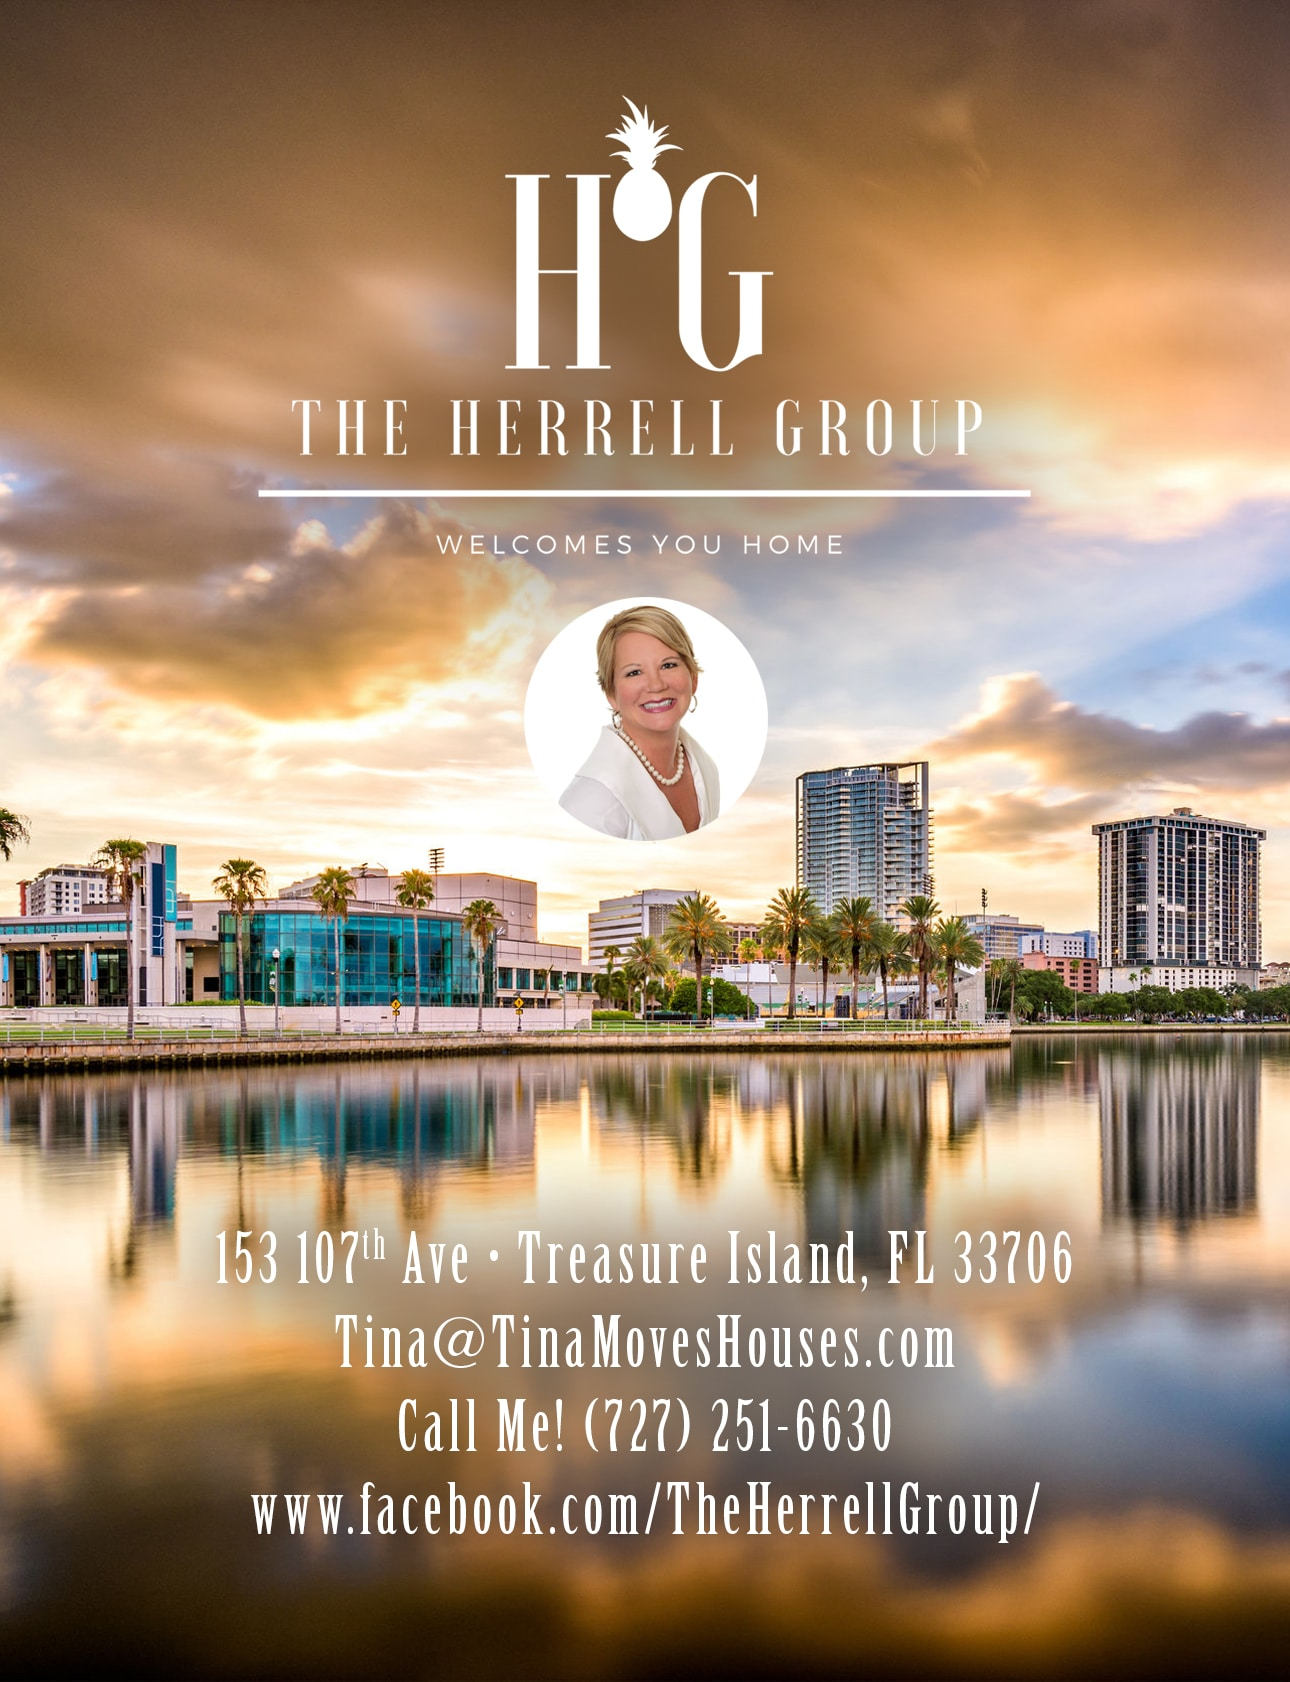 The Herrell Group